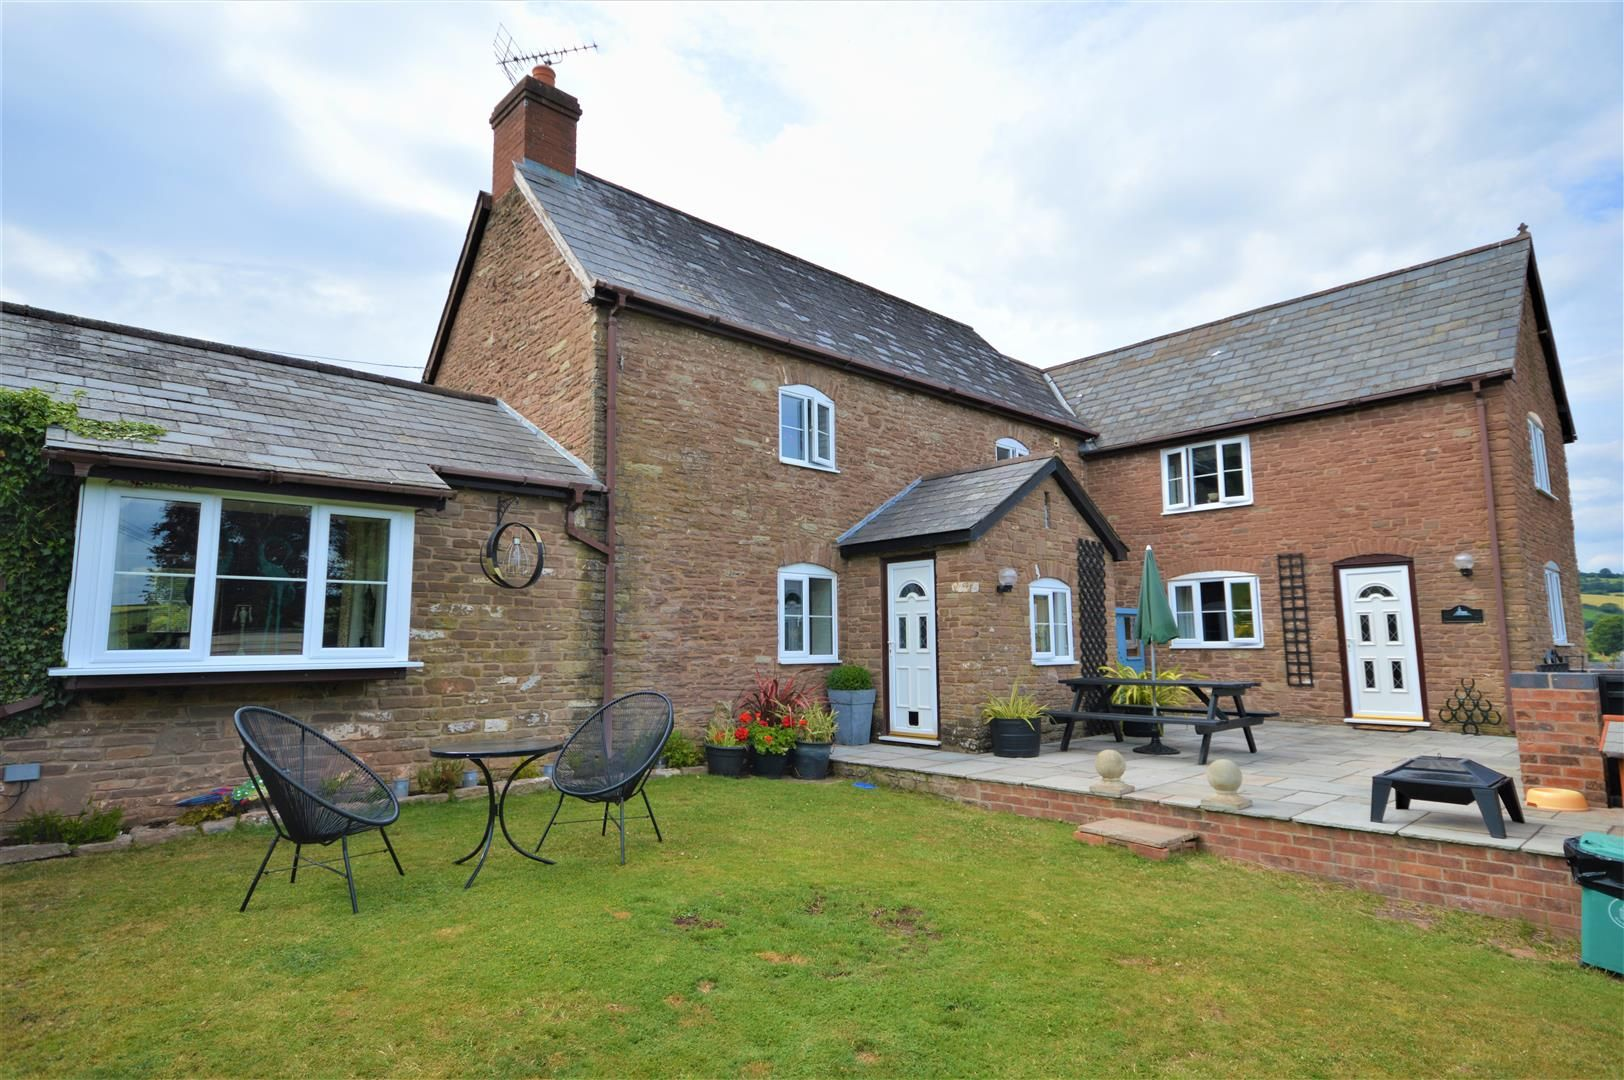 3 bed detached for sale in Orcop  - Property Image 22